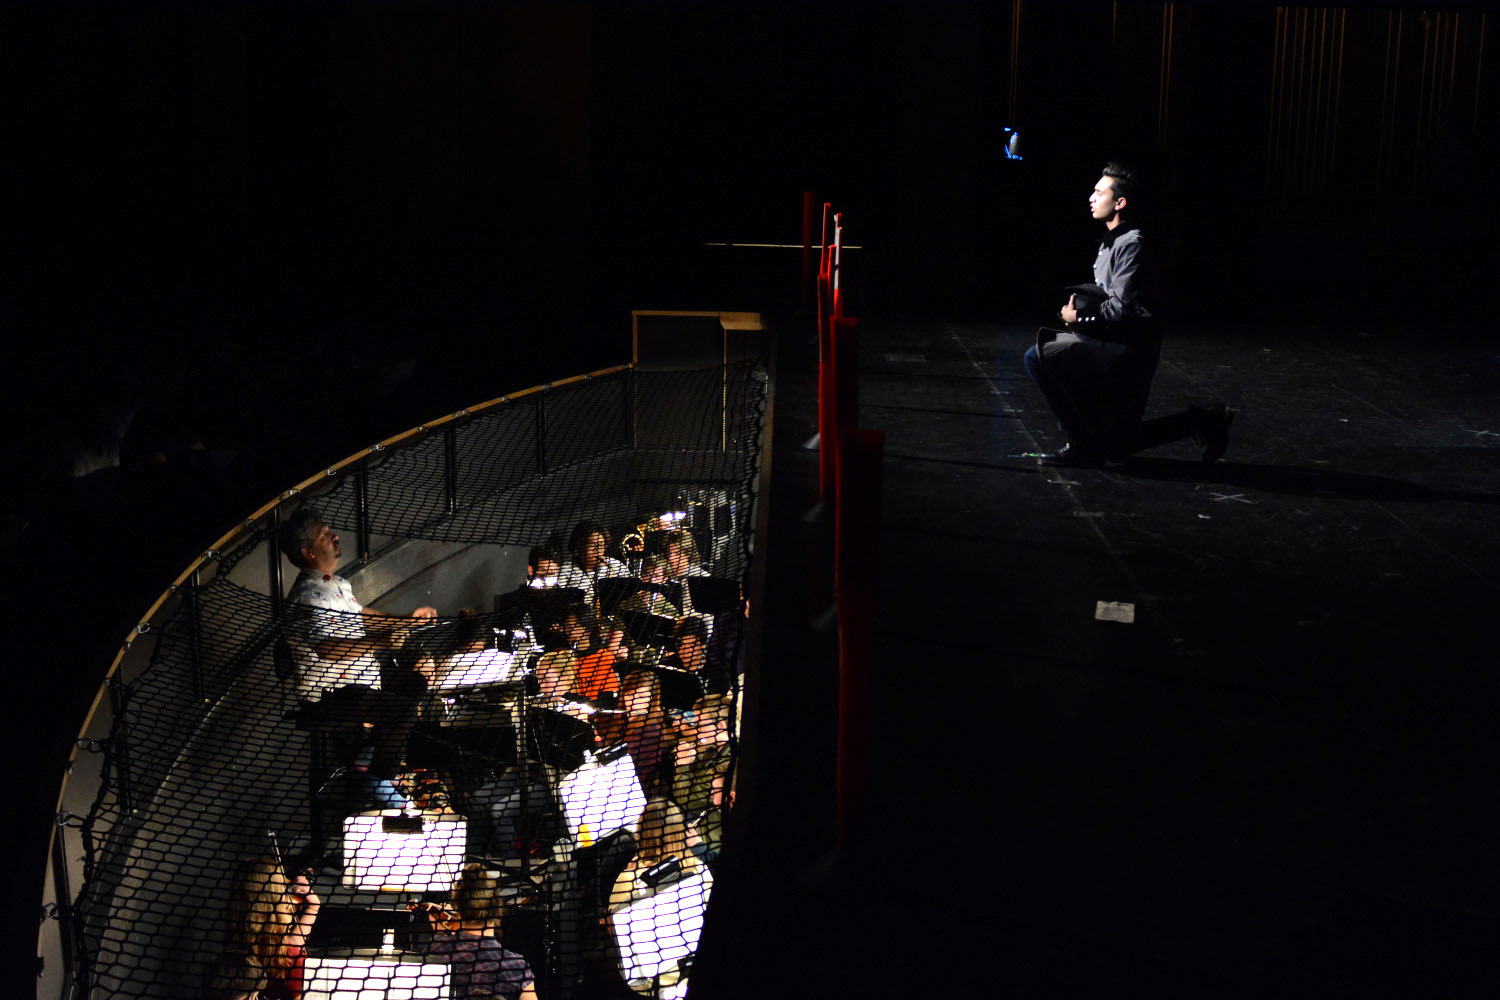 Javert, the antagonist,  played by Zain Farqui (11), displays his trouble over protagonist Jean Valjean's, played by Jaymes Macabale (12), evasion of the law. His performance is brought to life by the pit orchestra.